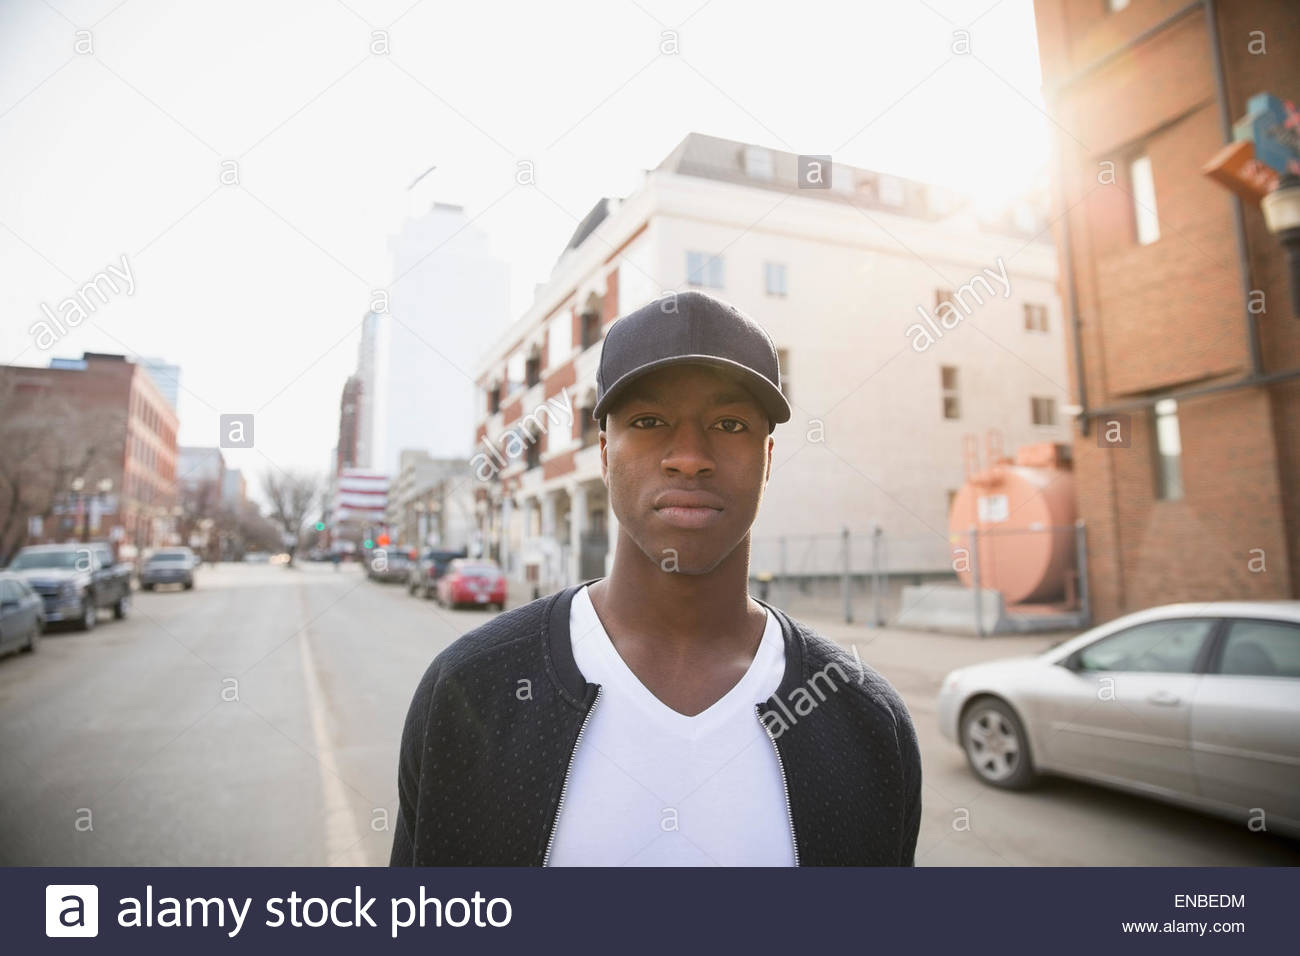 Portrait serious man in baseball cap urban street - Stock Image